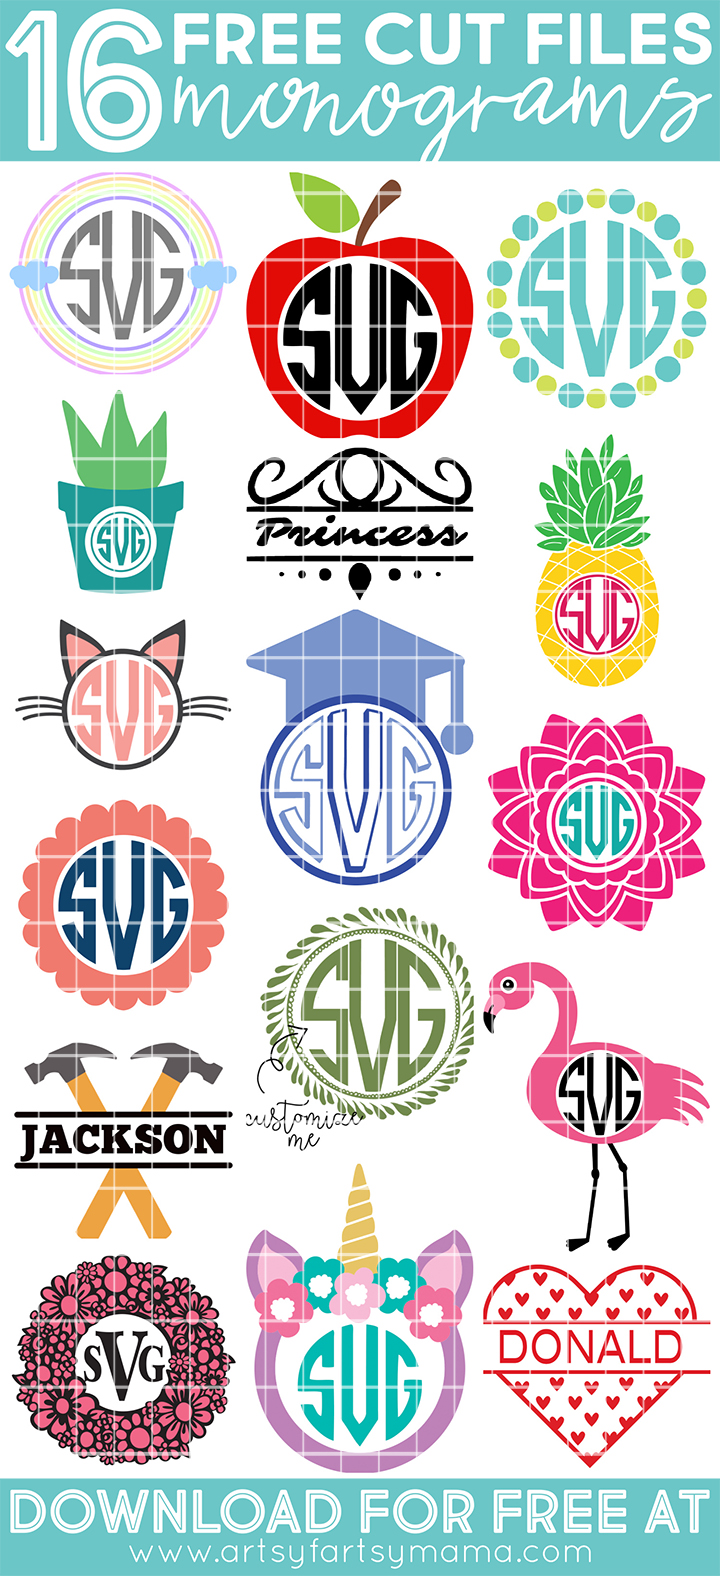 16 Free Monogram Cut Files